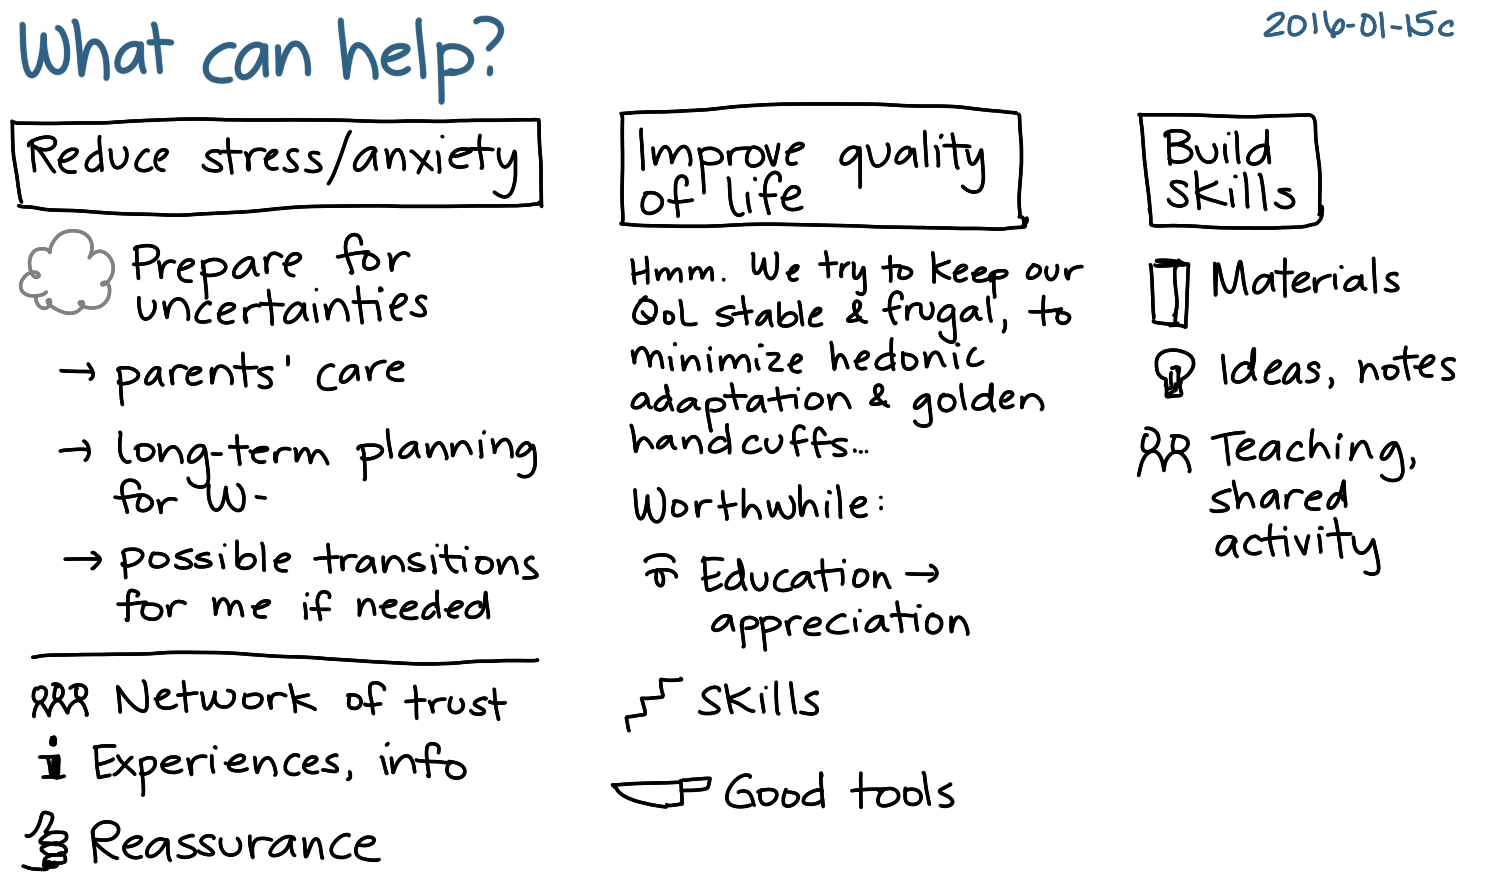 2016-01-15c What can help -- index card #help #connecting.png